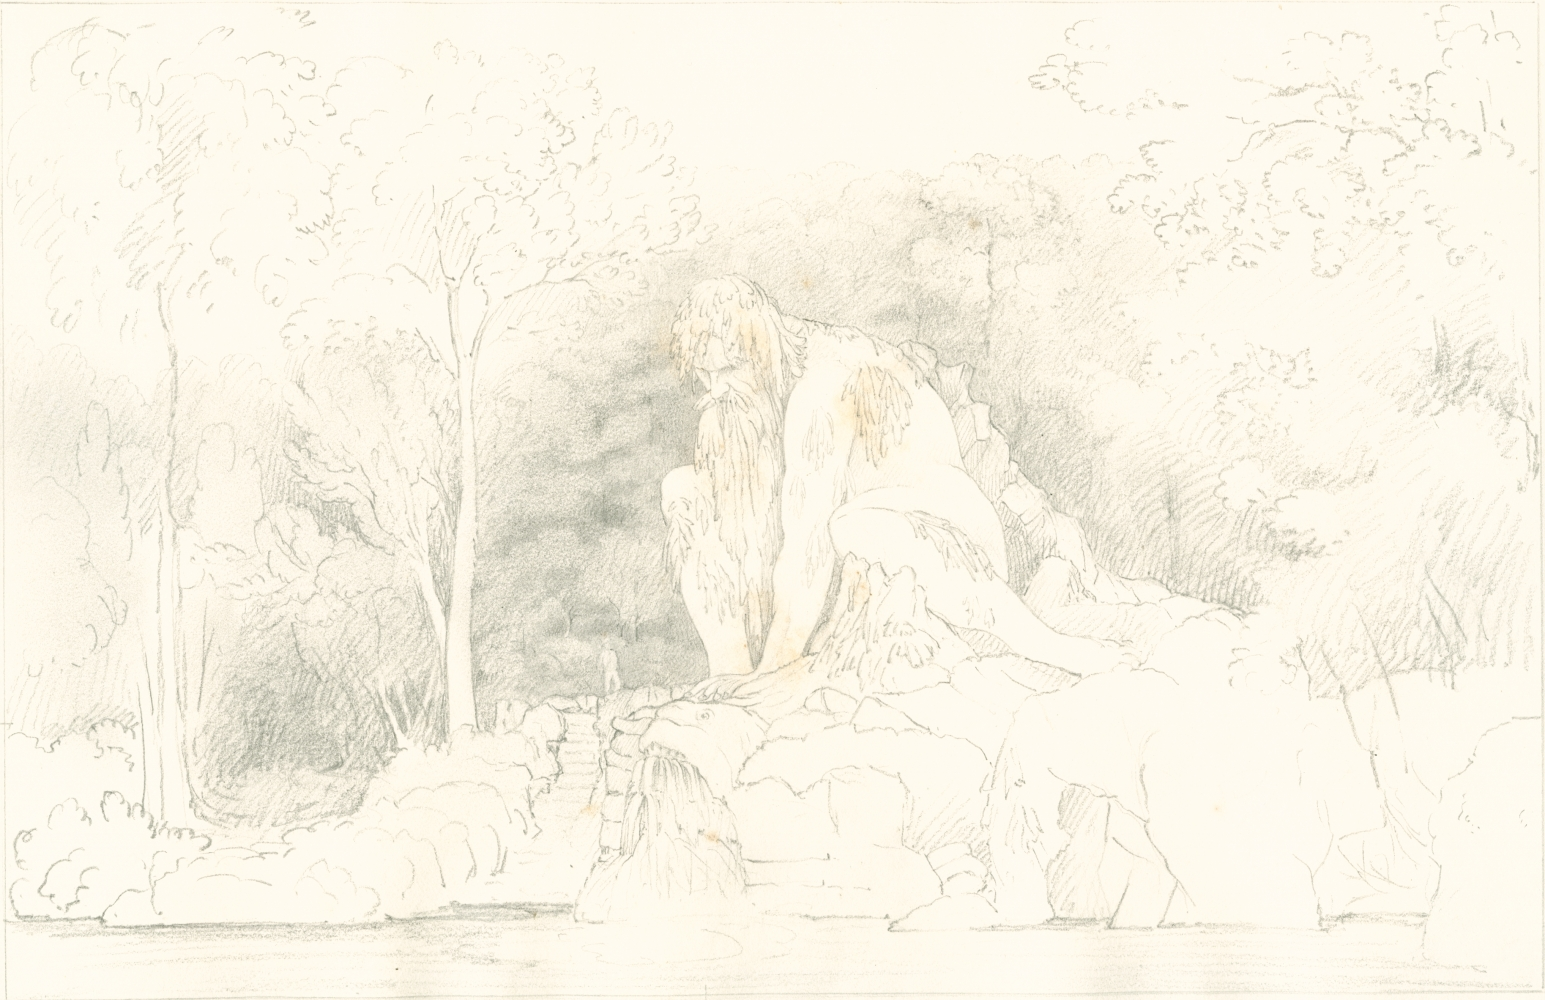 """Sir John Frederick William HERSCHEL (English, 1792-1872) """"No 358 Colossal Statue 'Father Apennine' by John of Bologna in the Grand-ducal garden of Pratolino near Florence"""" , 1824 Camera lucida drawing, pencil on paper"""